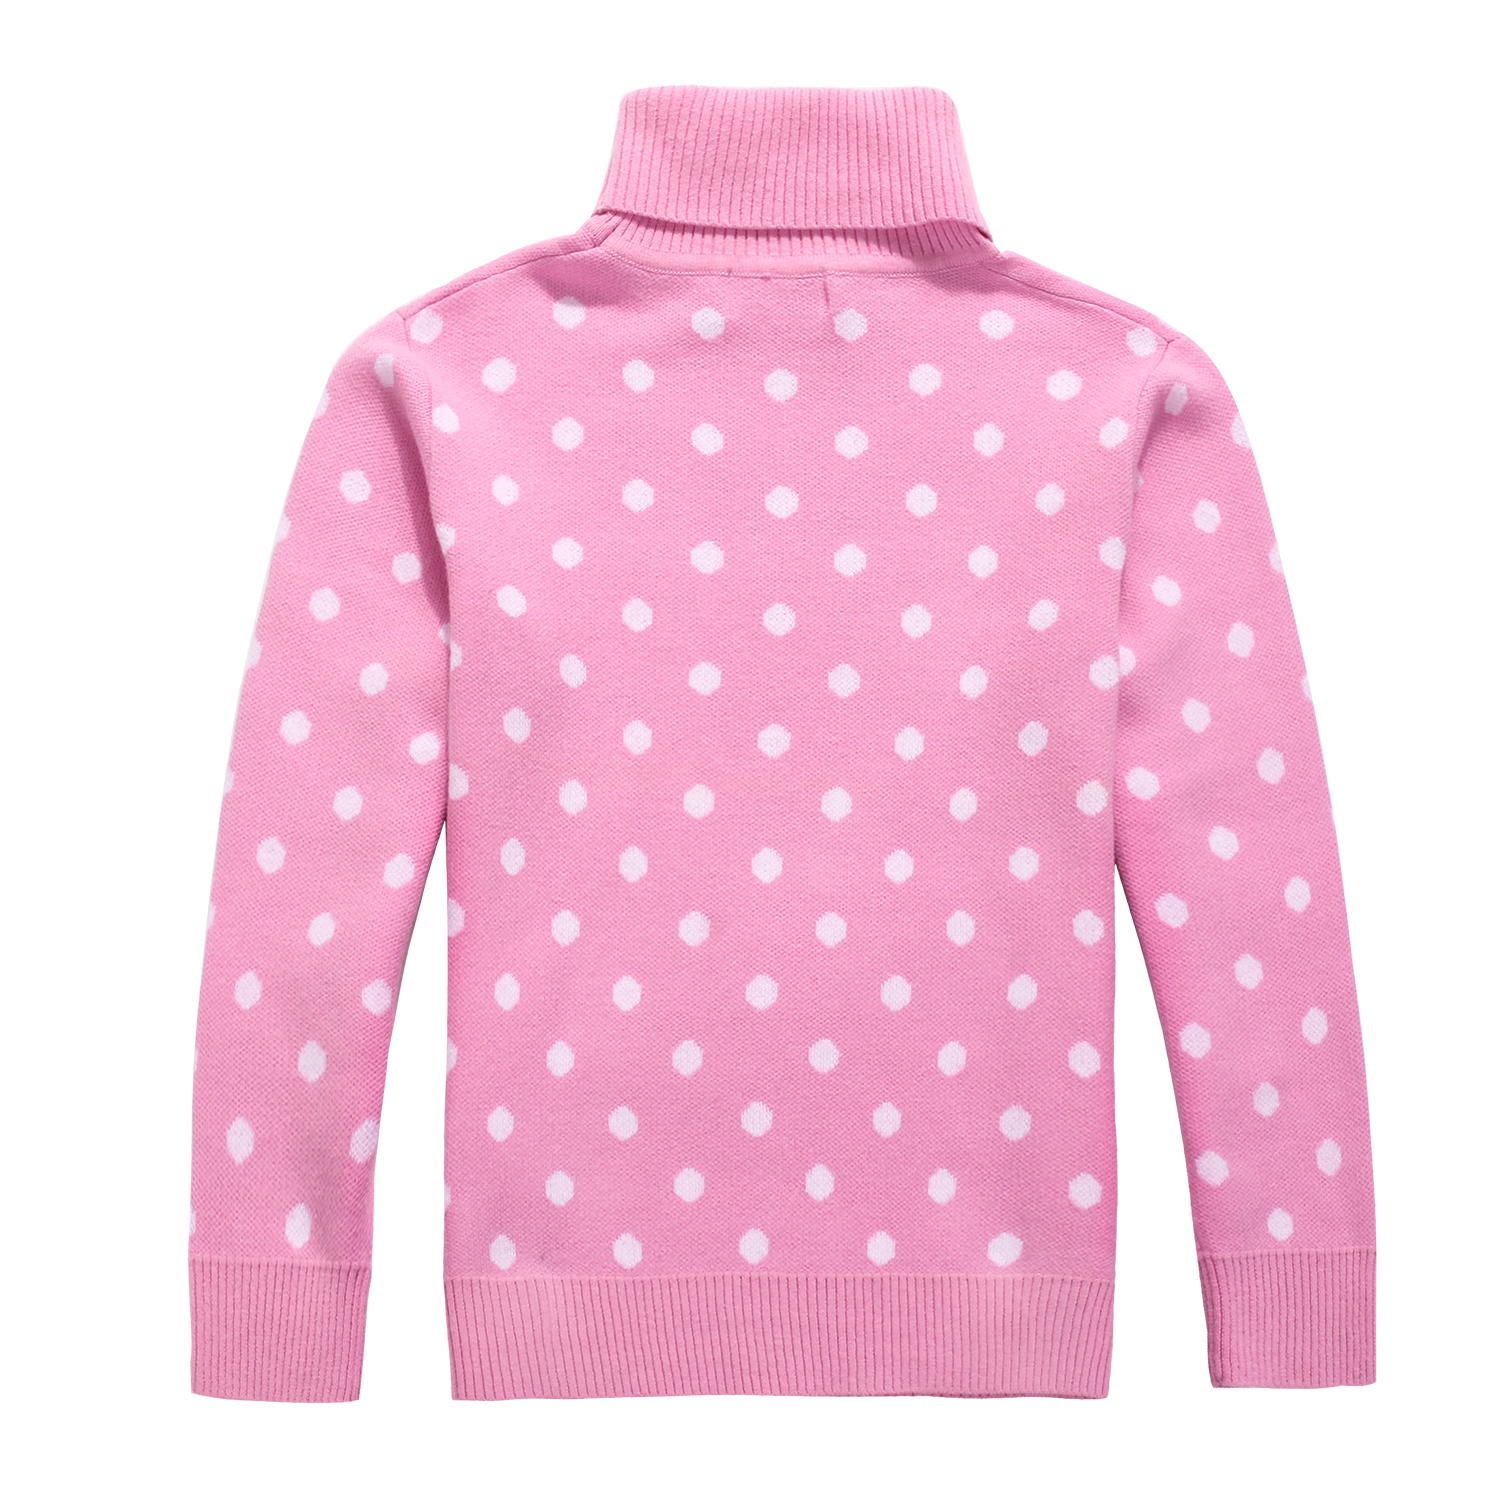 2017 Spring and Autumn Girl 100% Cotton Dots Pattern Princess ...